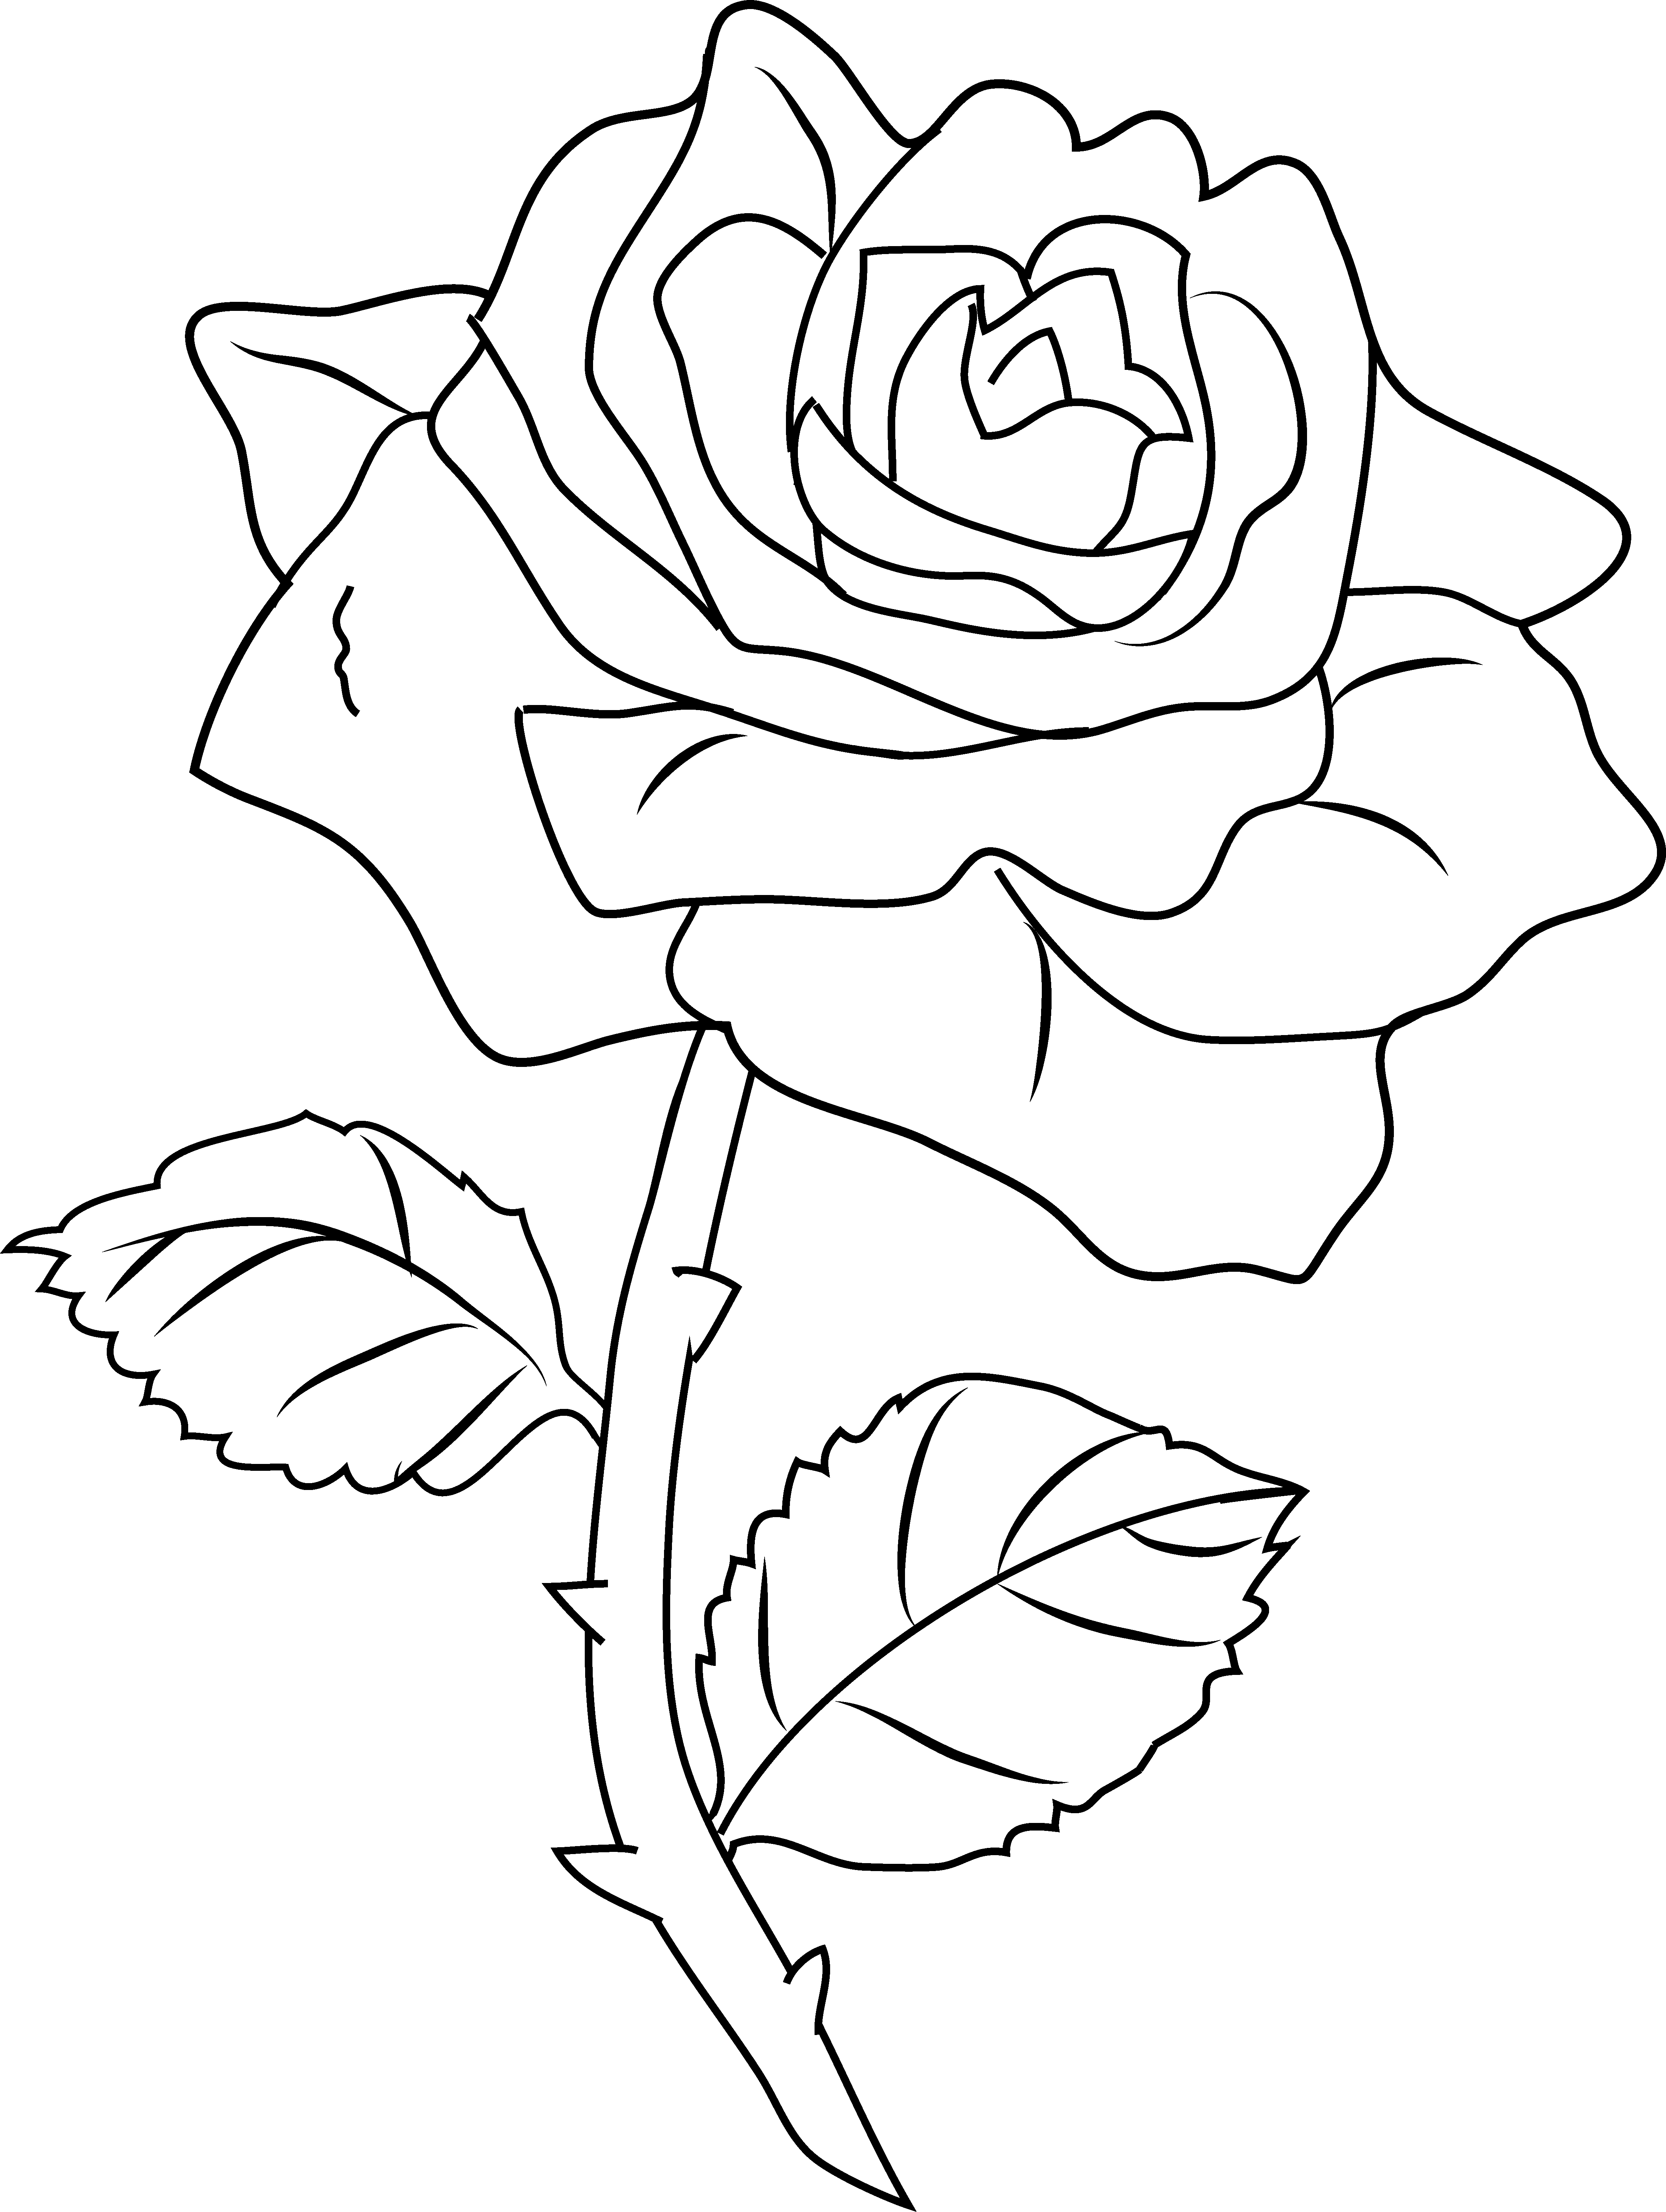 coloring pages rose rose coloring page free printable coloring pages coloring pages rose